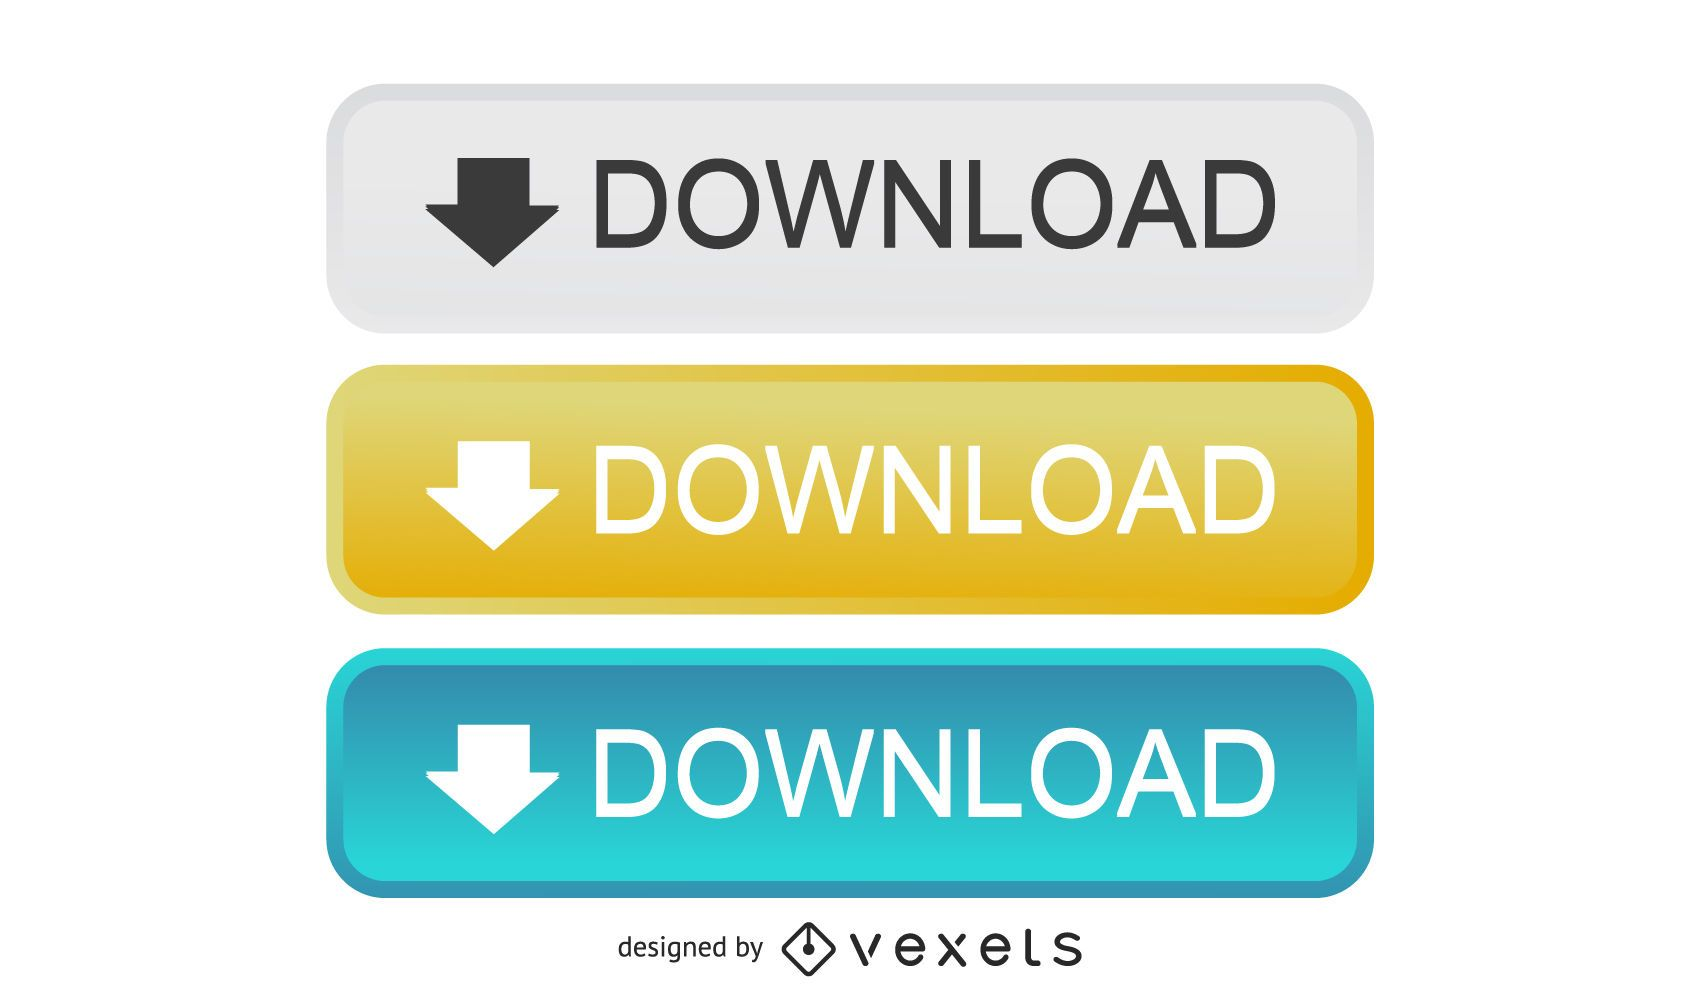 Glossy Rectangular Download Buttons